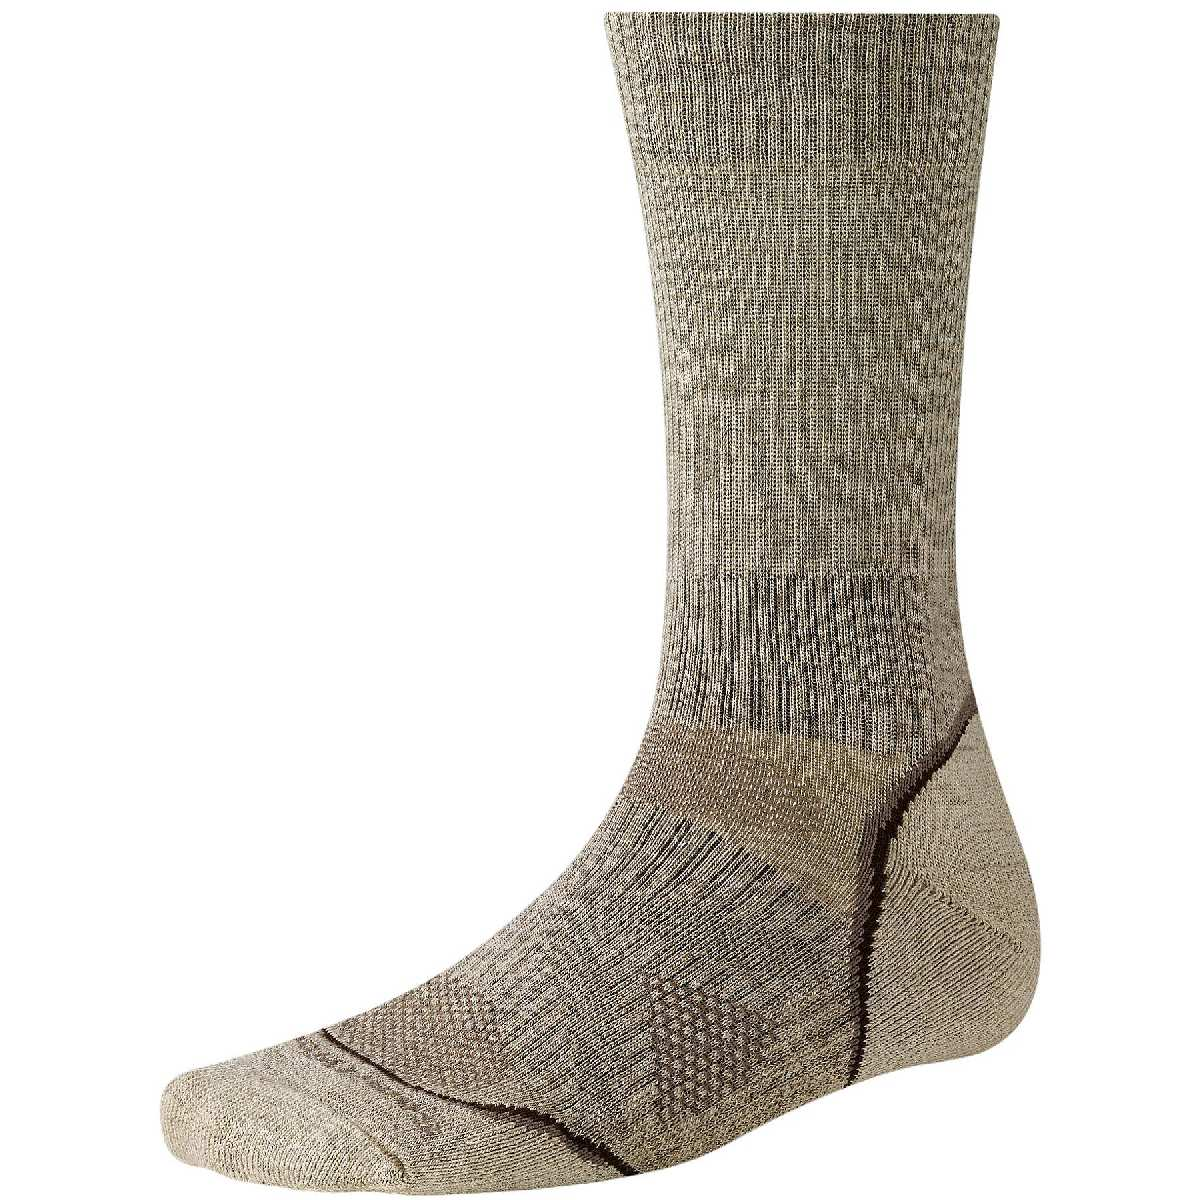 SmartWool PhD Outdoor Light Crew Hiking Sock Size XL Oatmeal U.S.A. & Canada